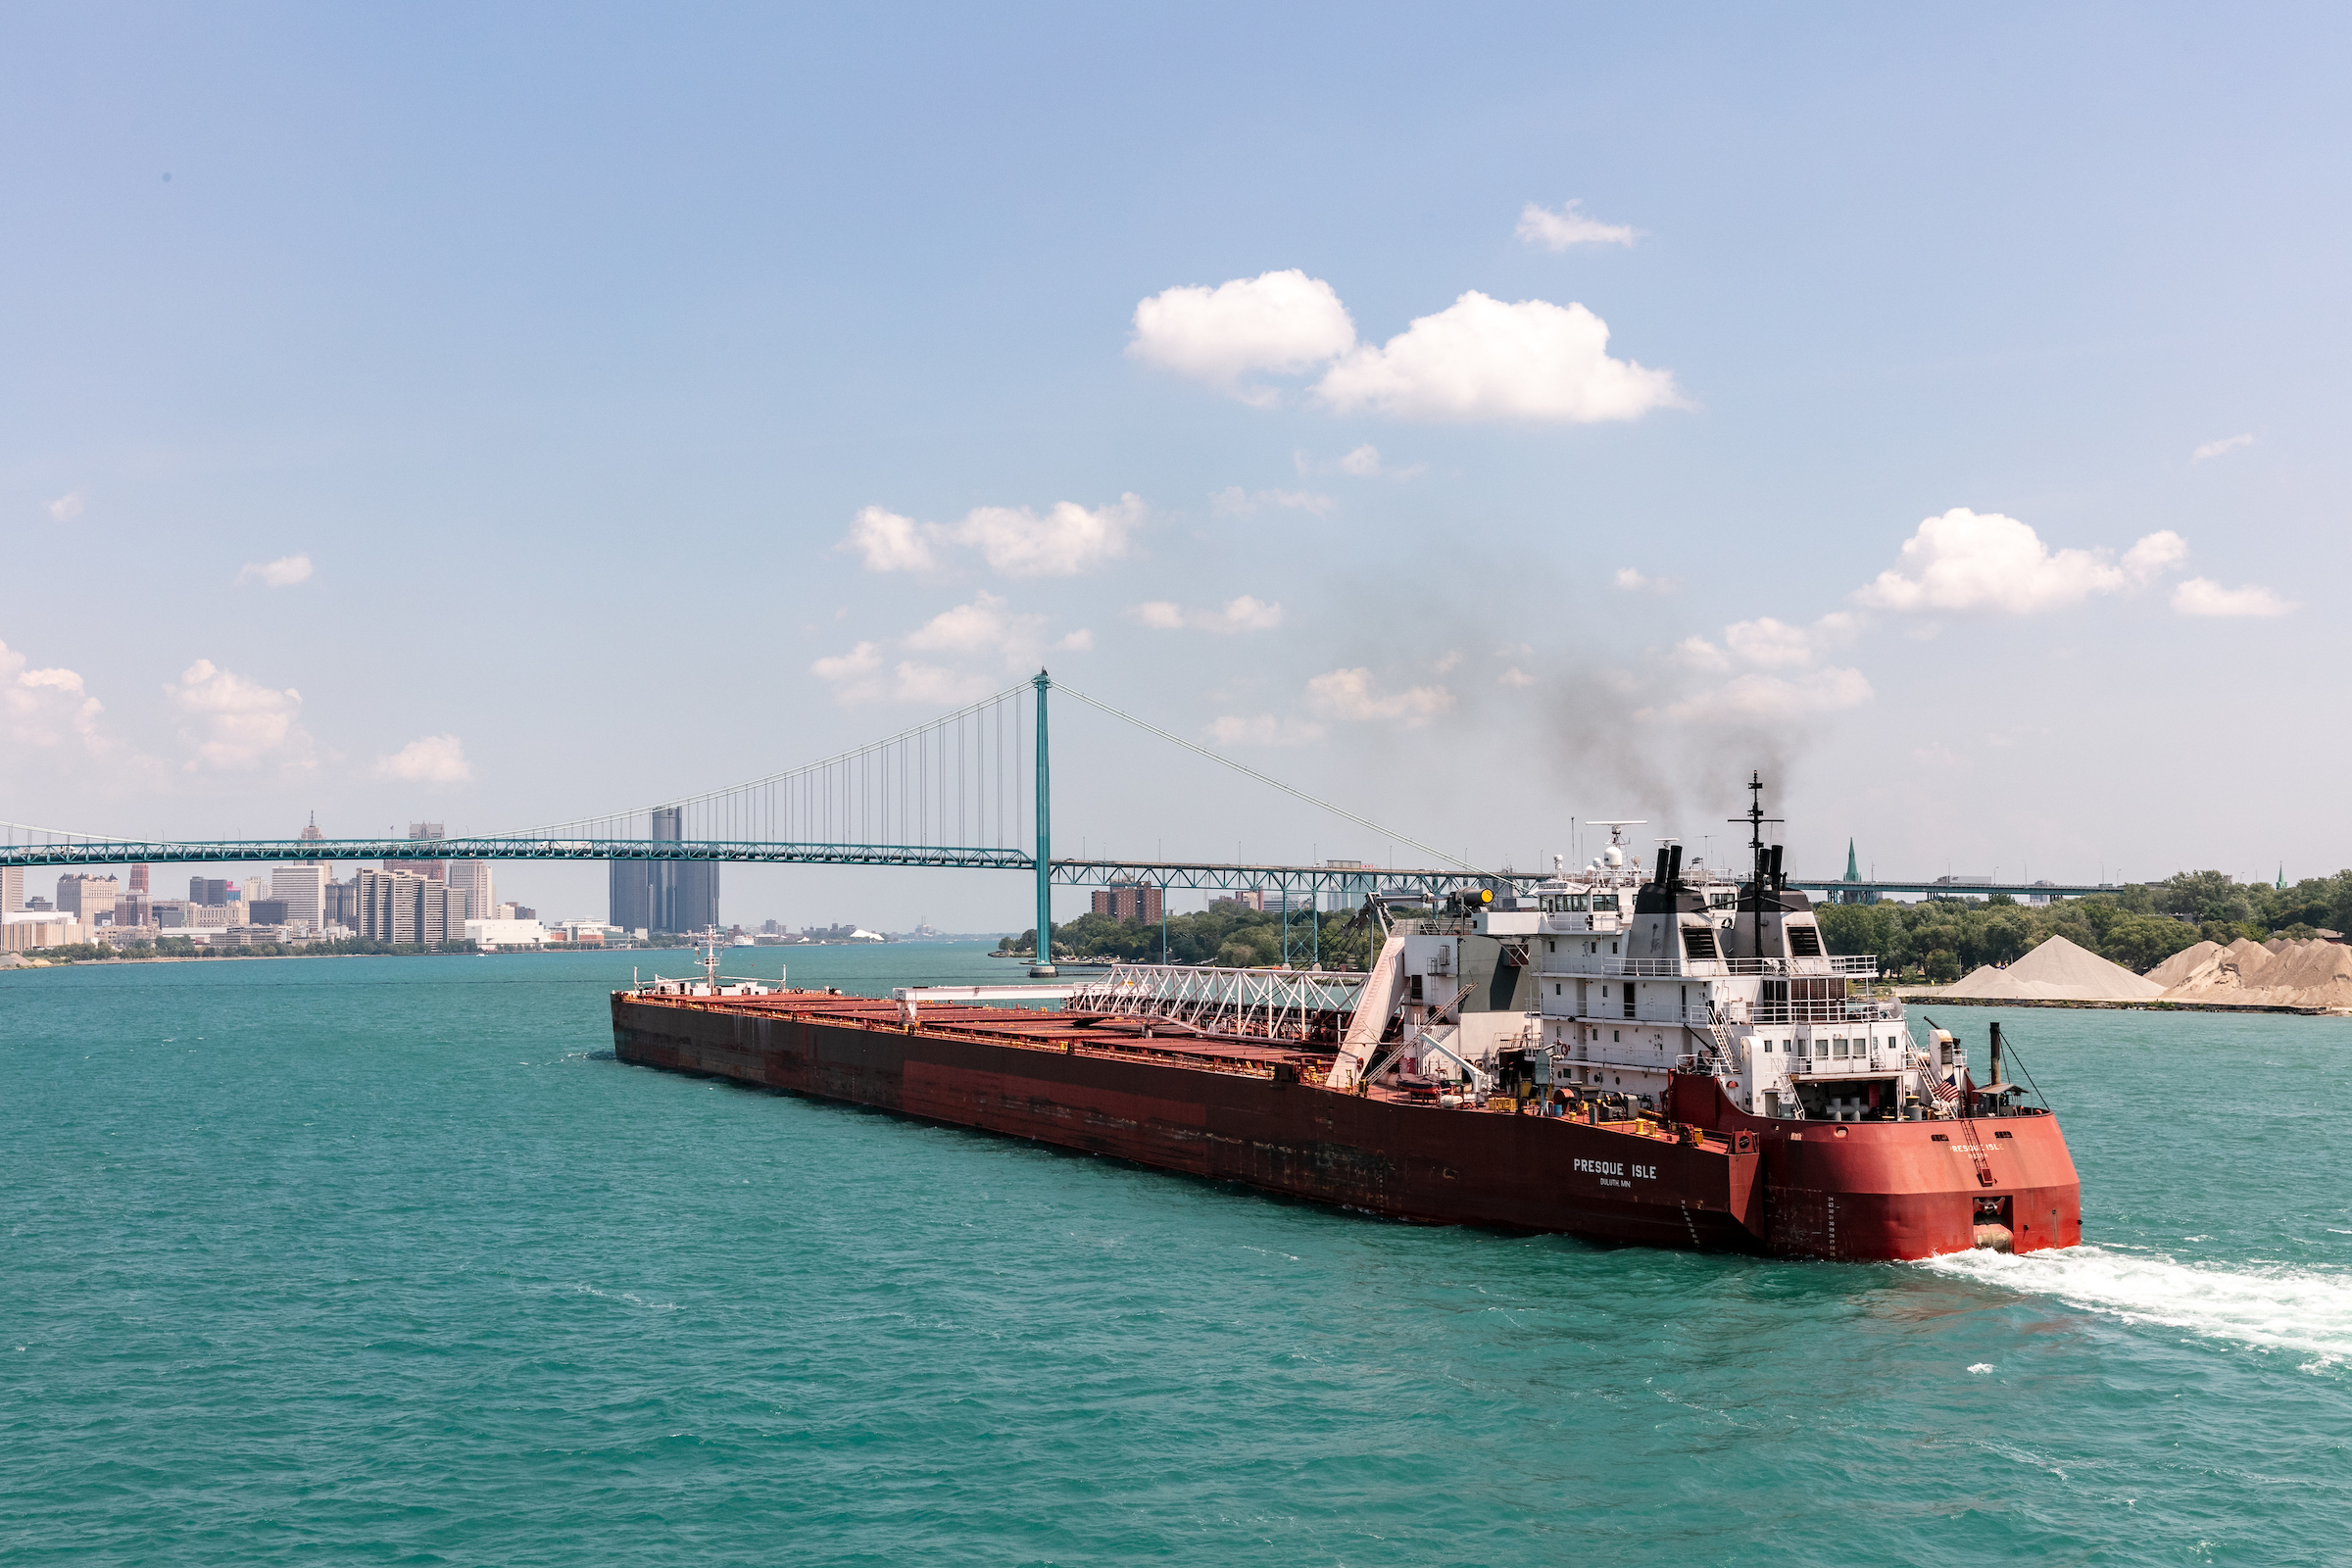 A long red and black ship in the middle of a wide river. A blue bridge can be seen in the distance.